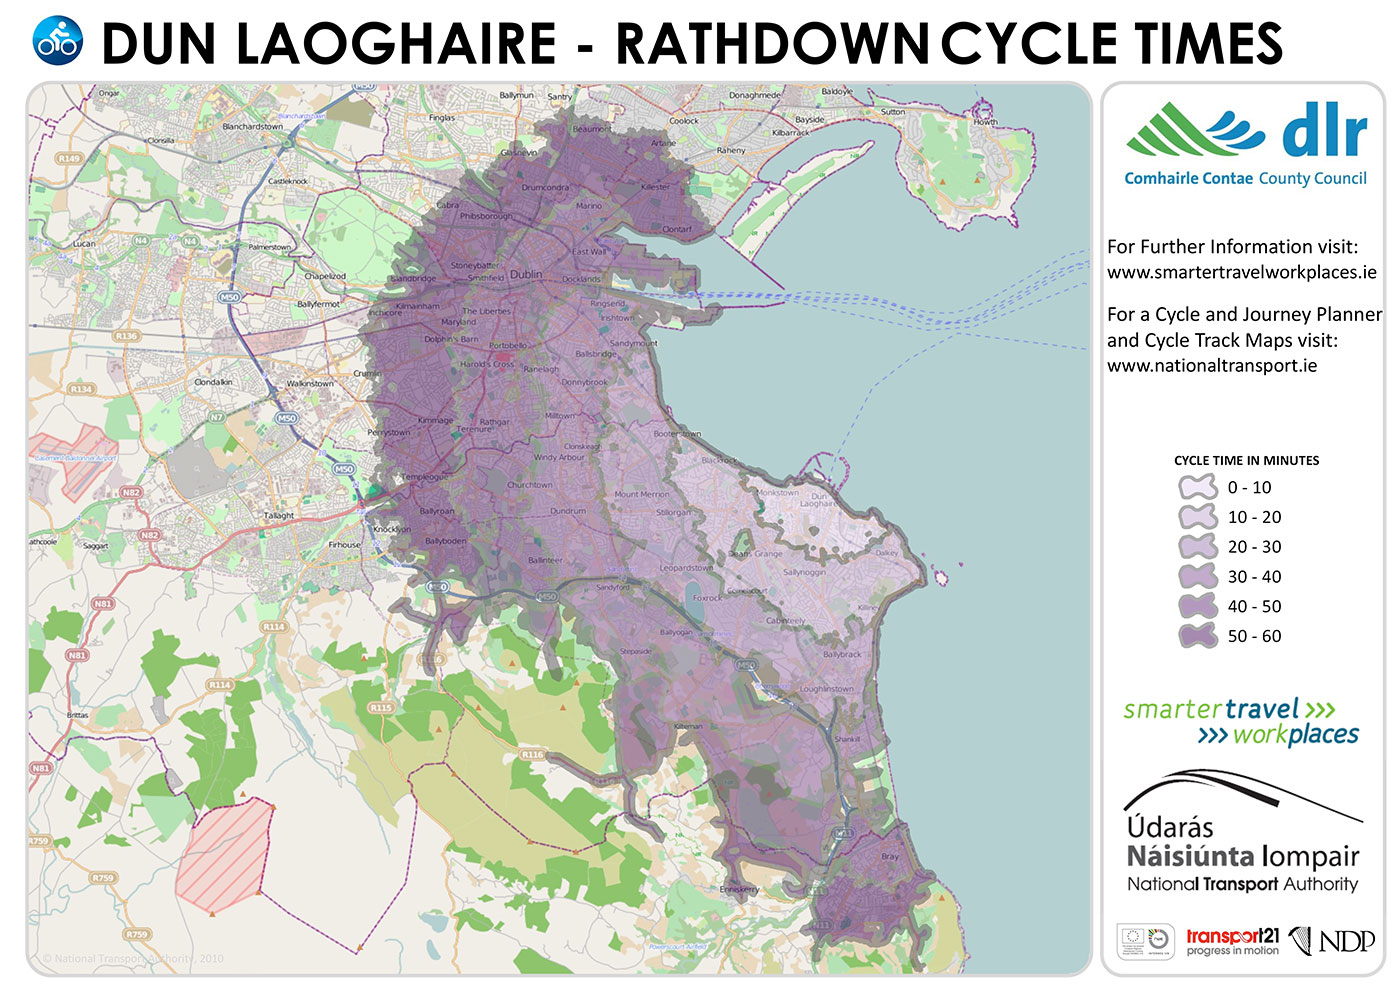 Dun laoghaire and Rathdown: DLR Tourism cycle times information map